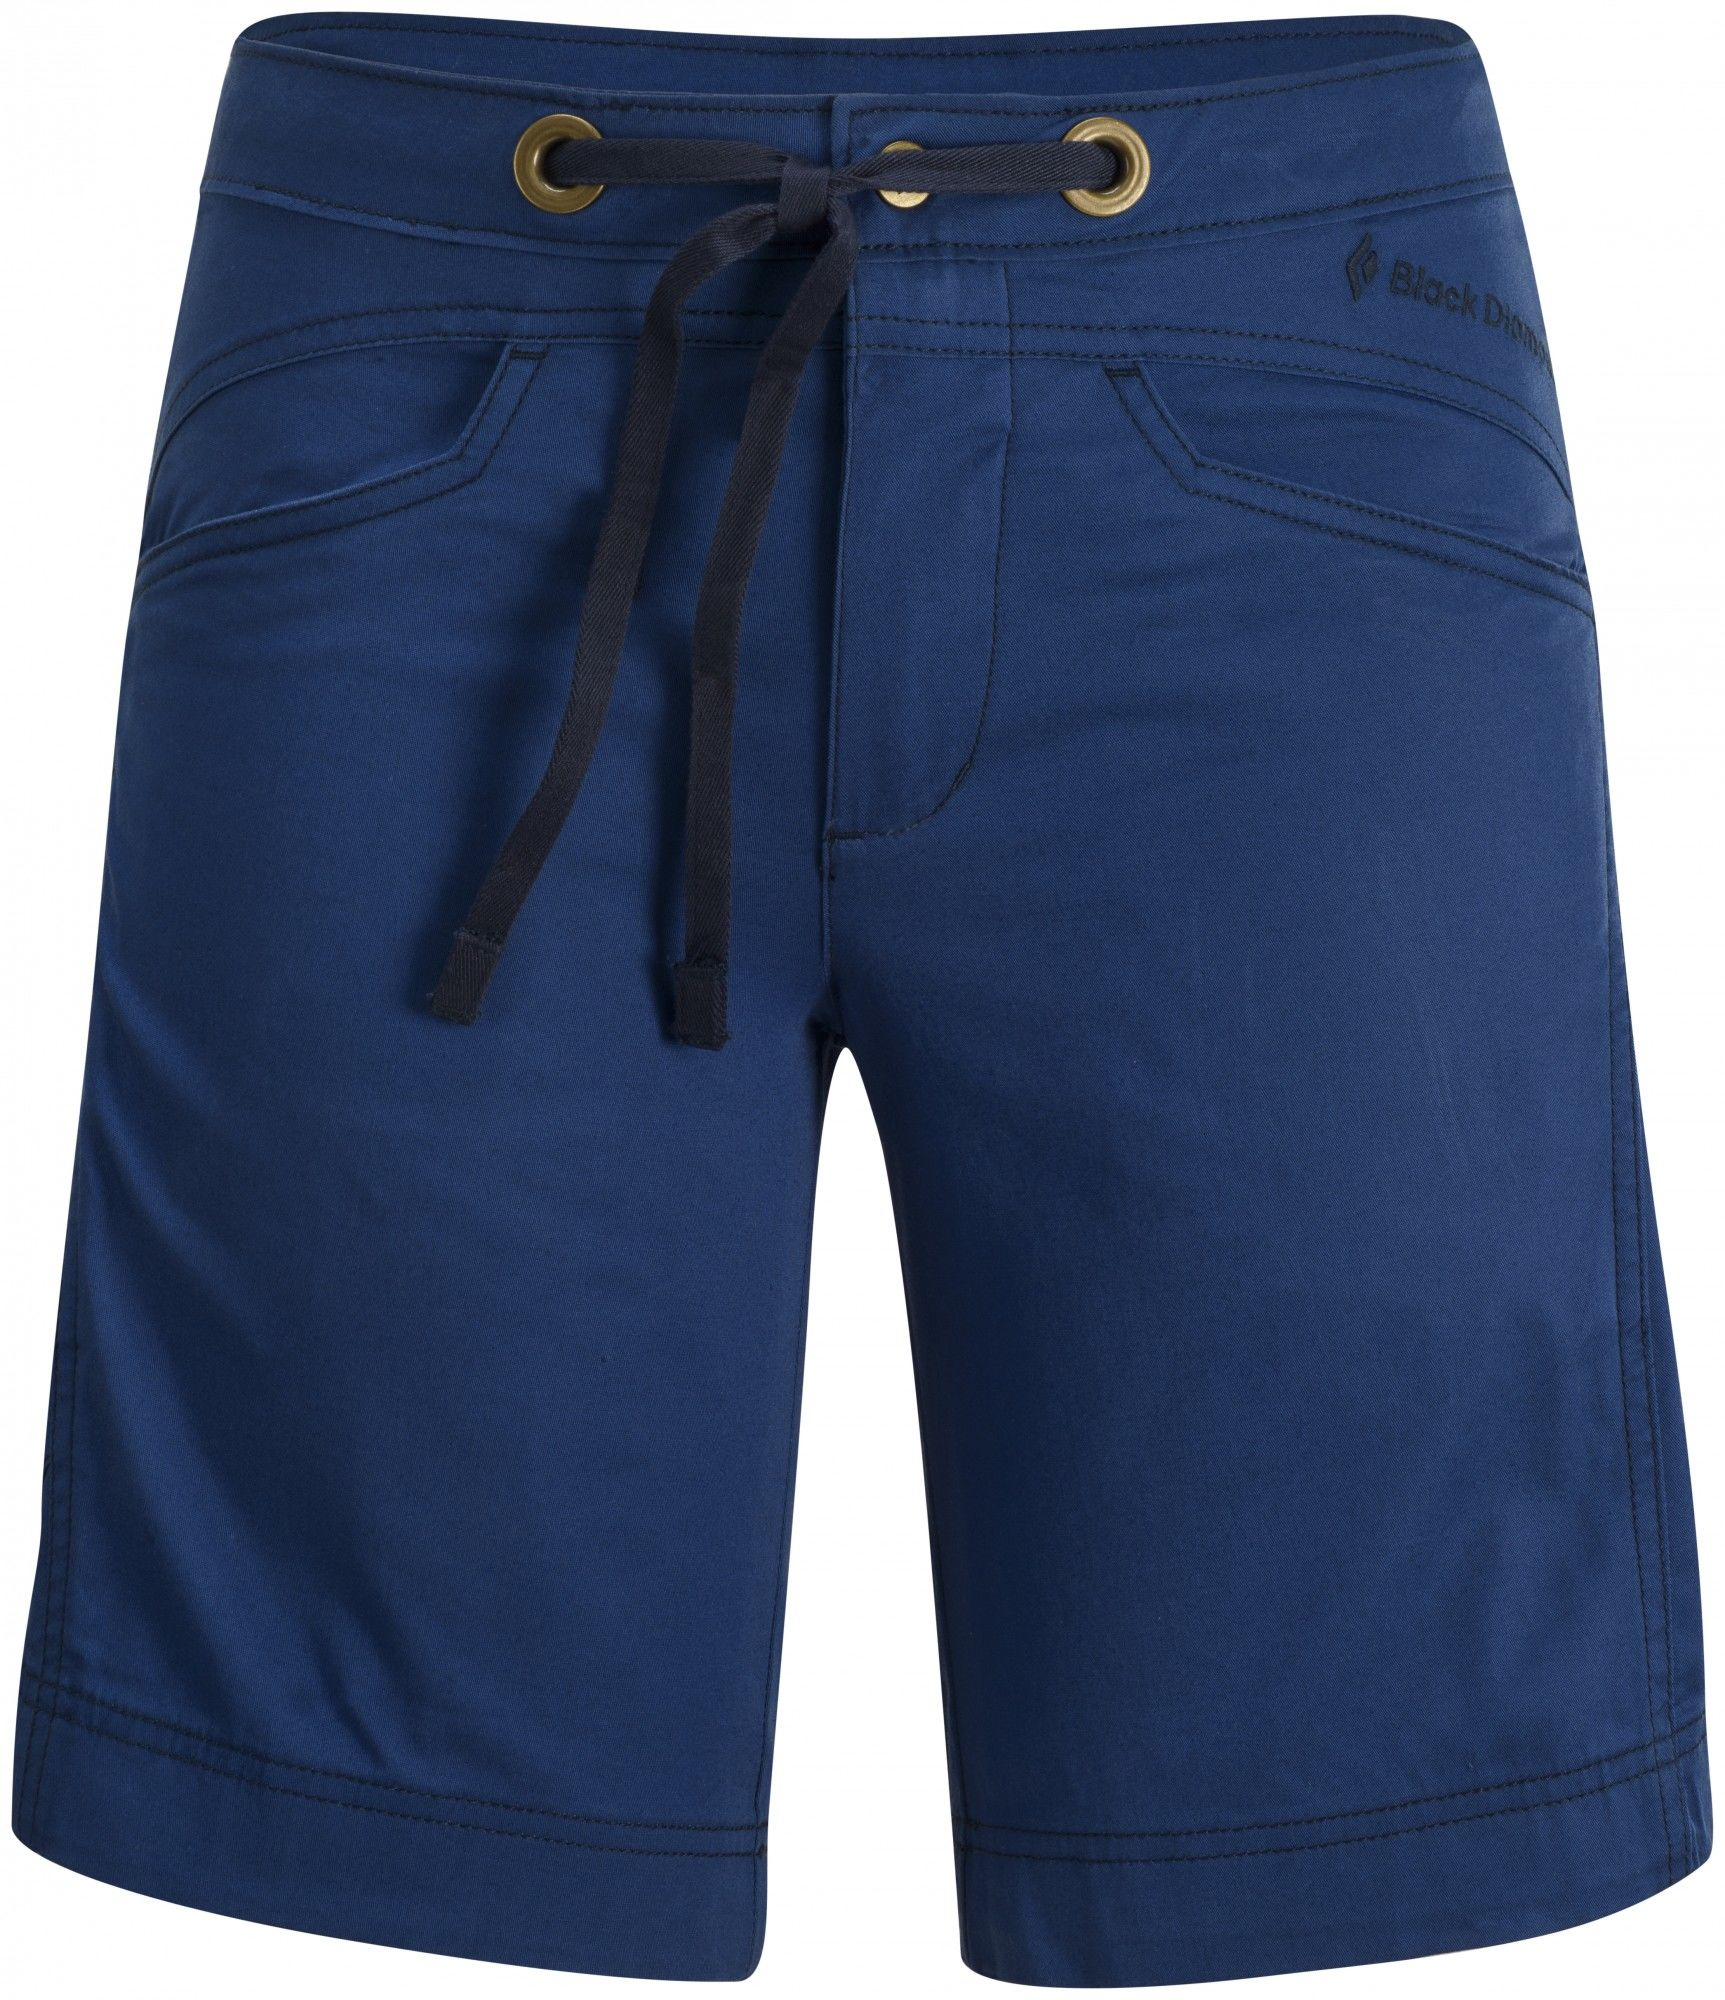 Black Diamond Credo Shorts Blau, Female Shorts, 4